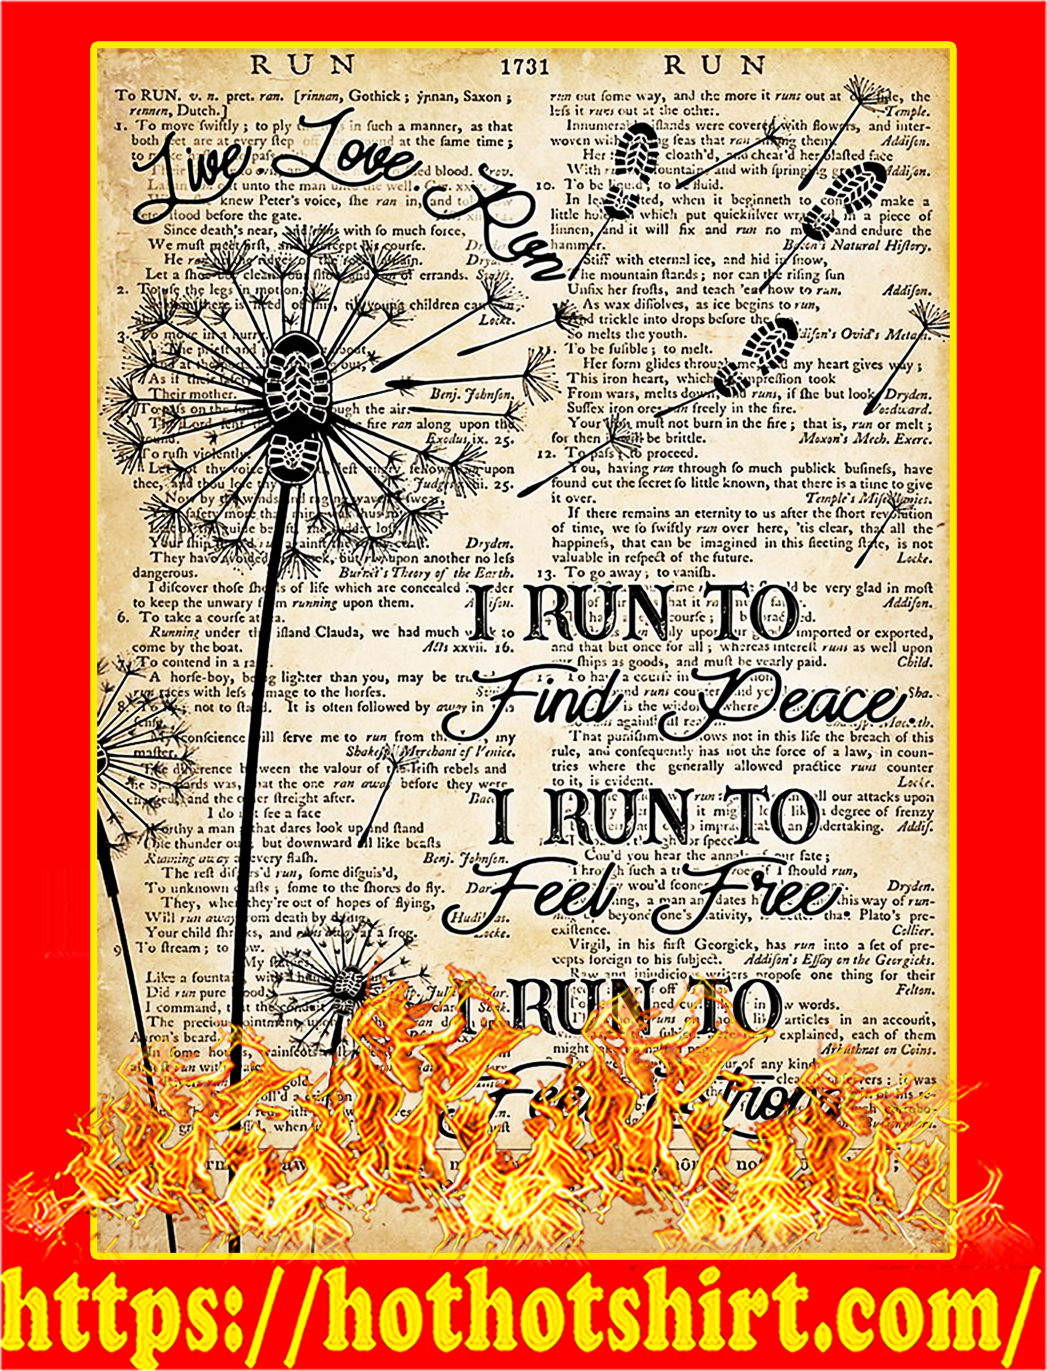 I run to find peace I run to feel free poster - A1